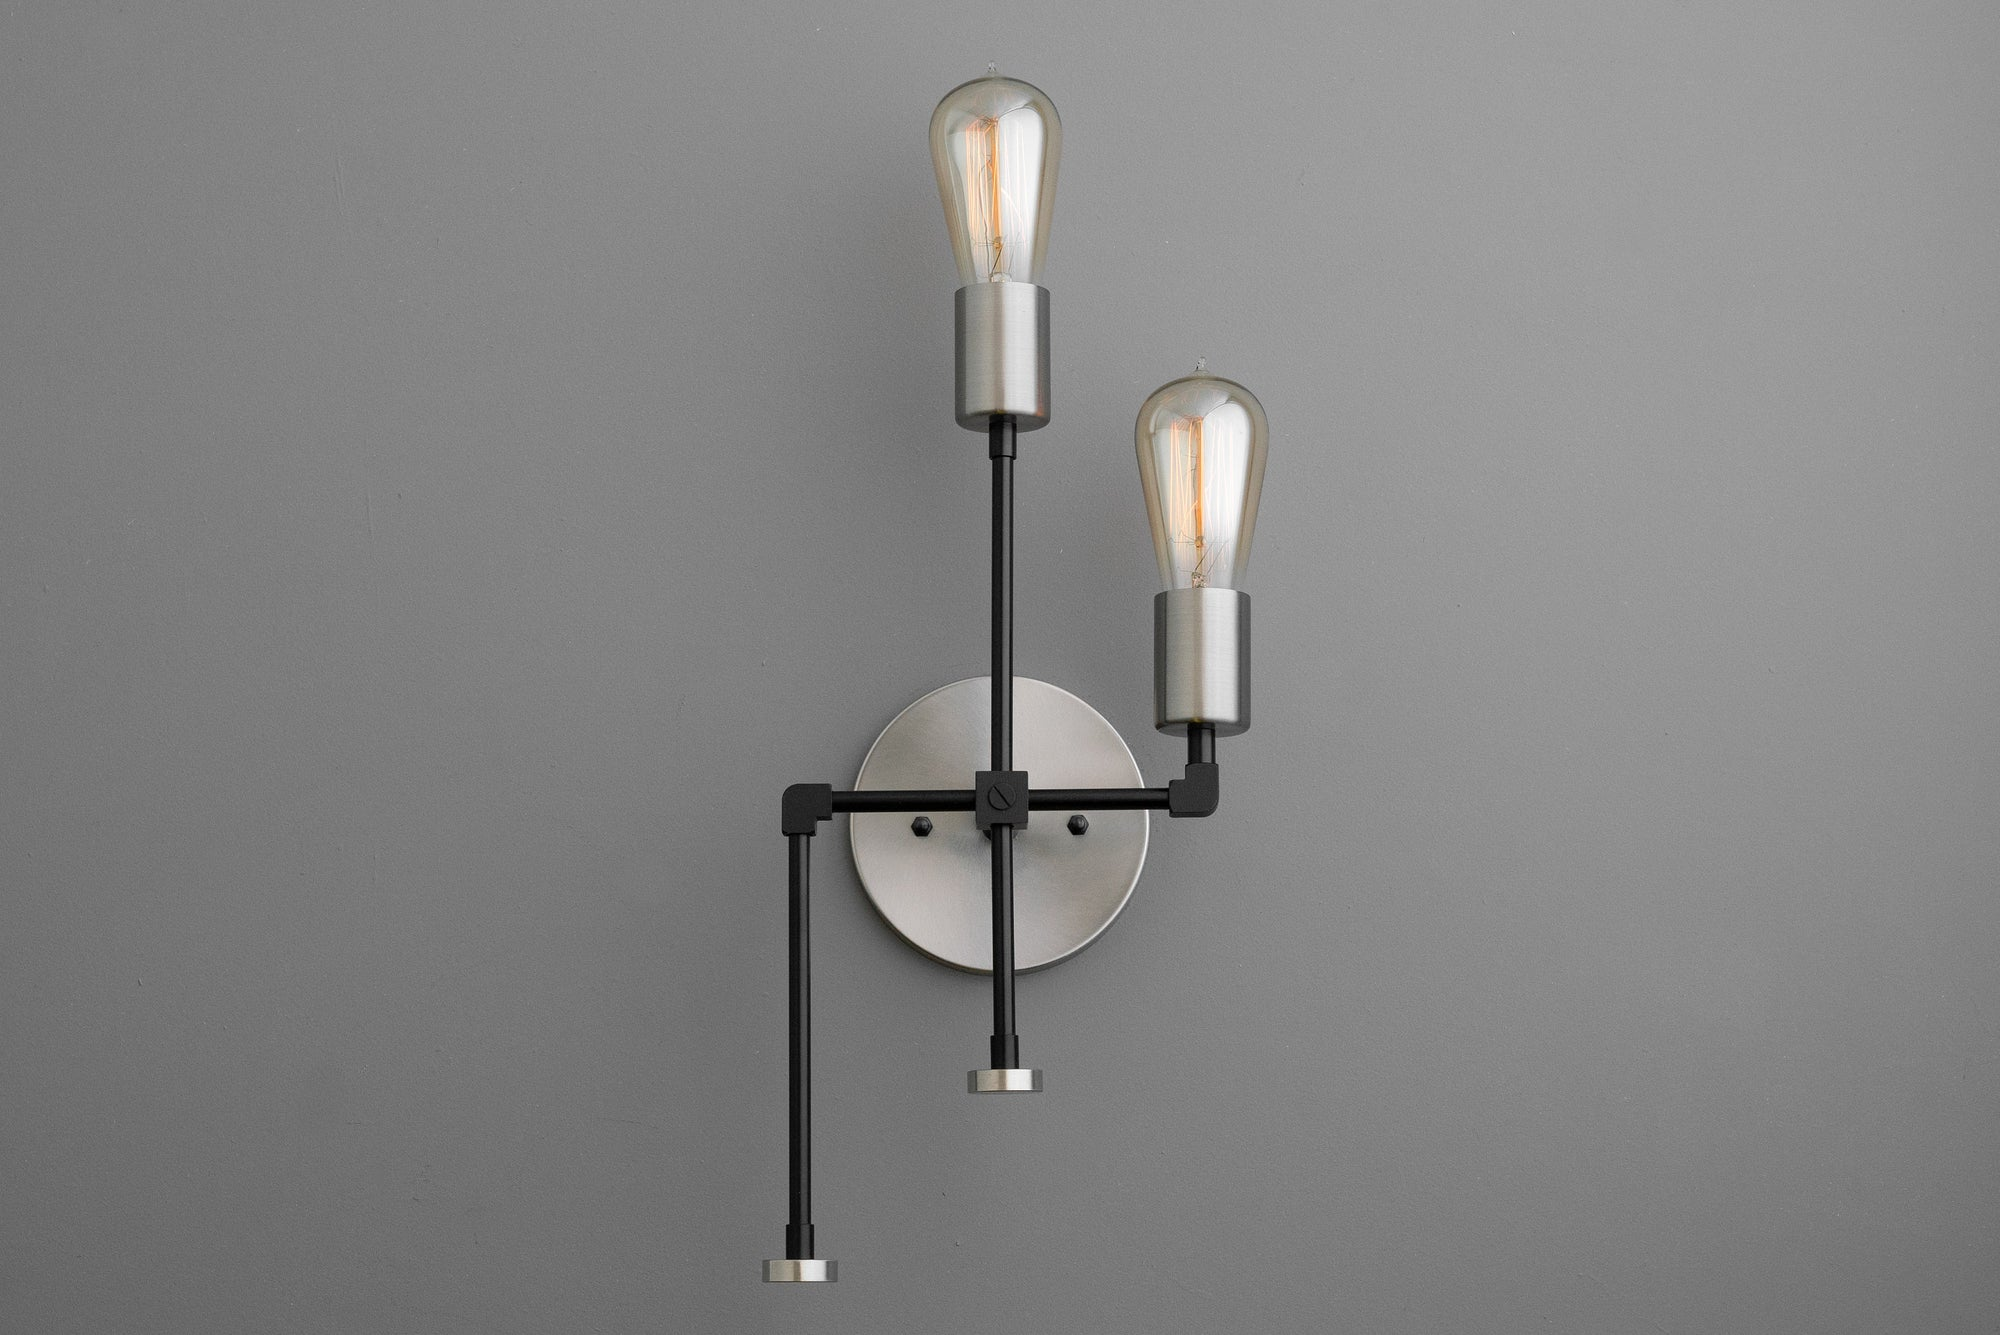 Sconce Model No 3684 Peared Creation